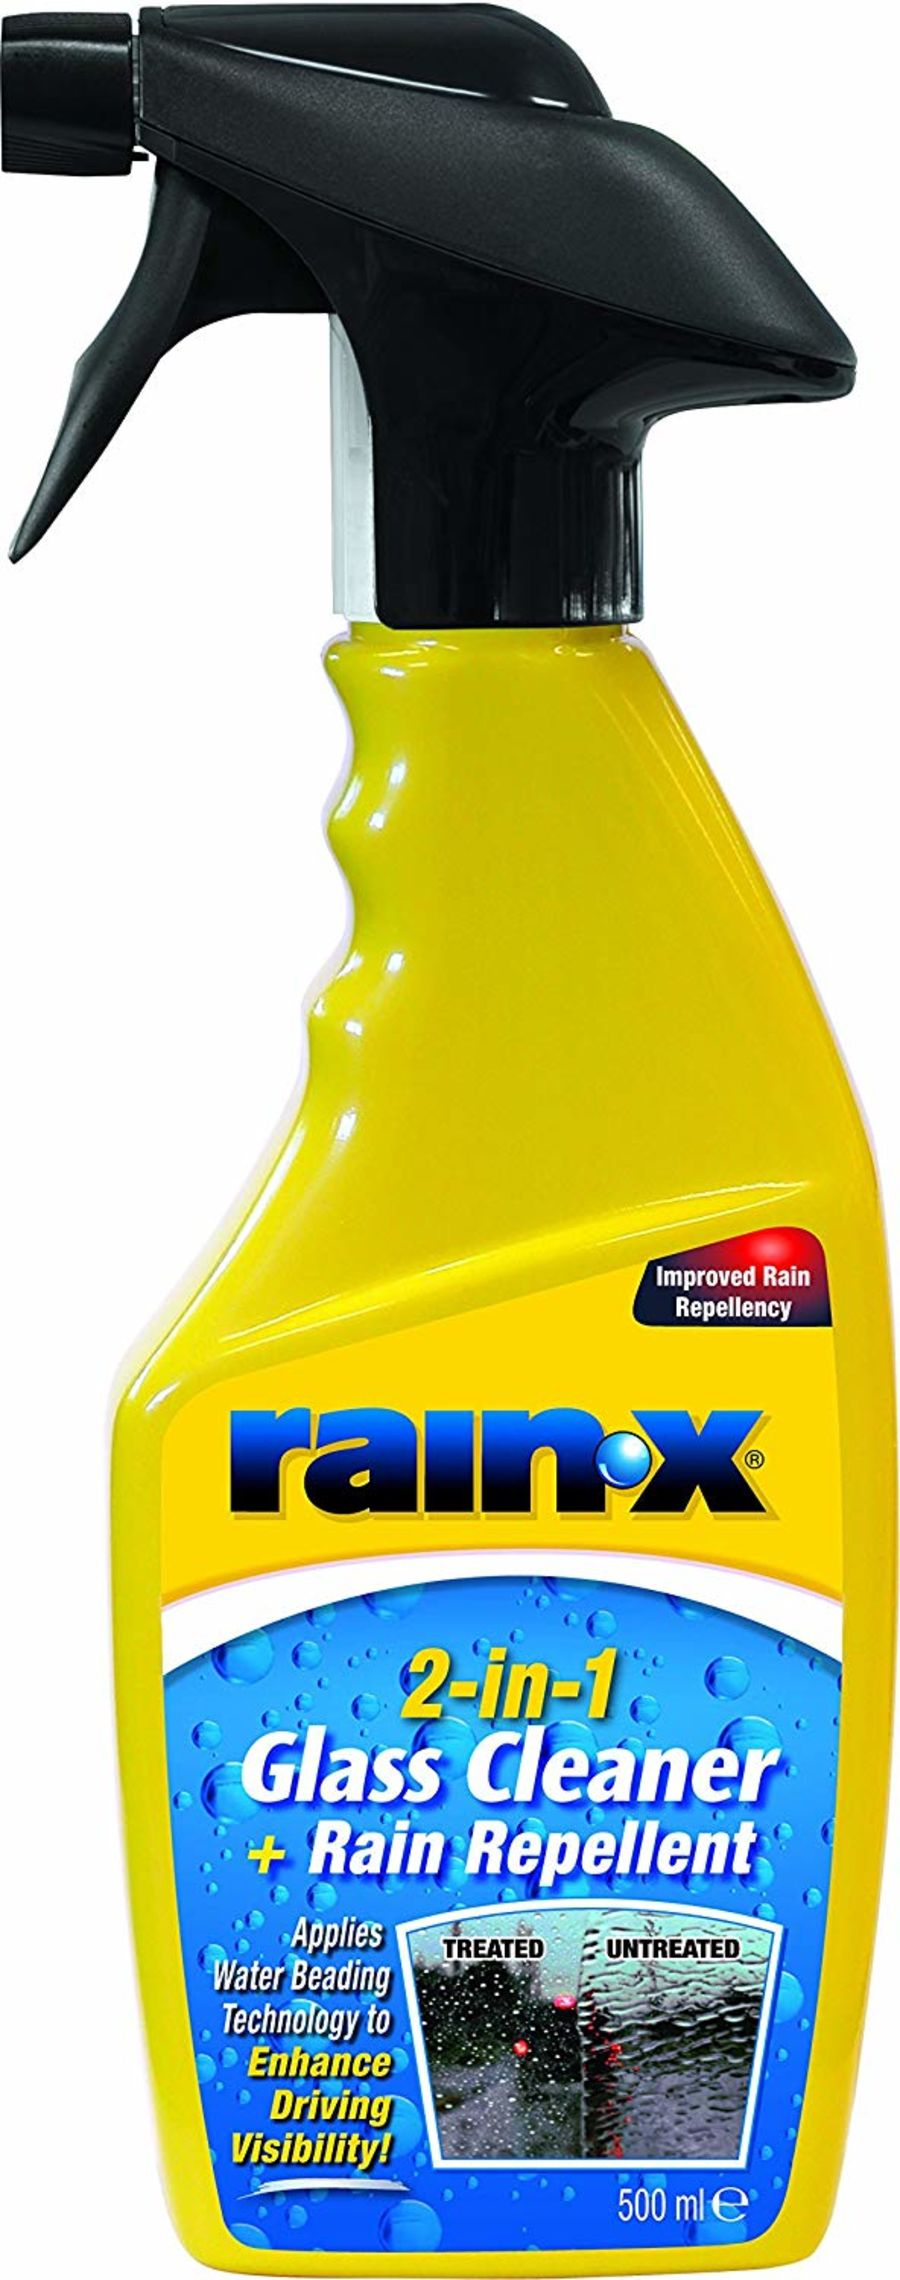 Rain Repellent and Glass Cleaner